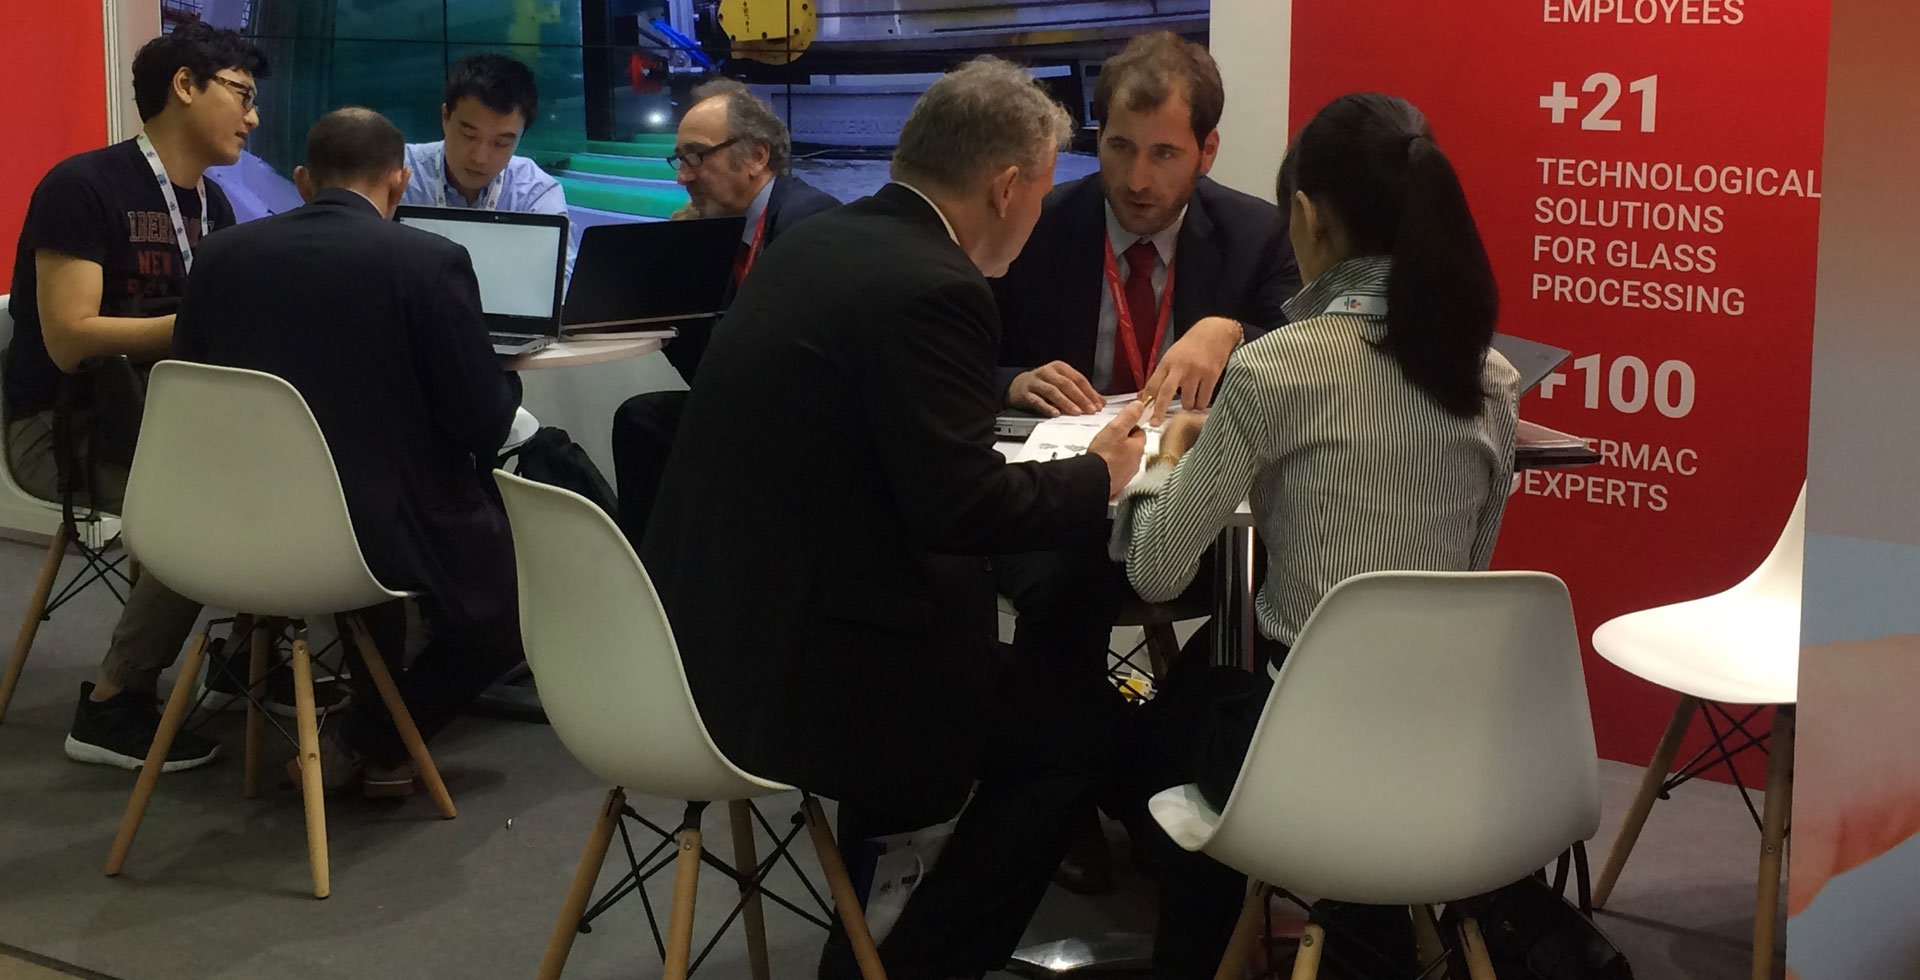 Intermac and Diamut present at Glasstech Asia 2017